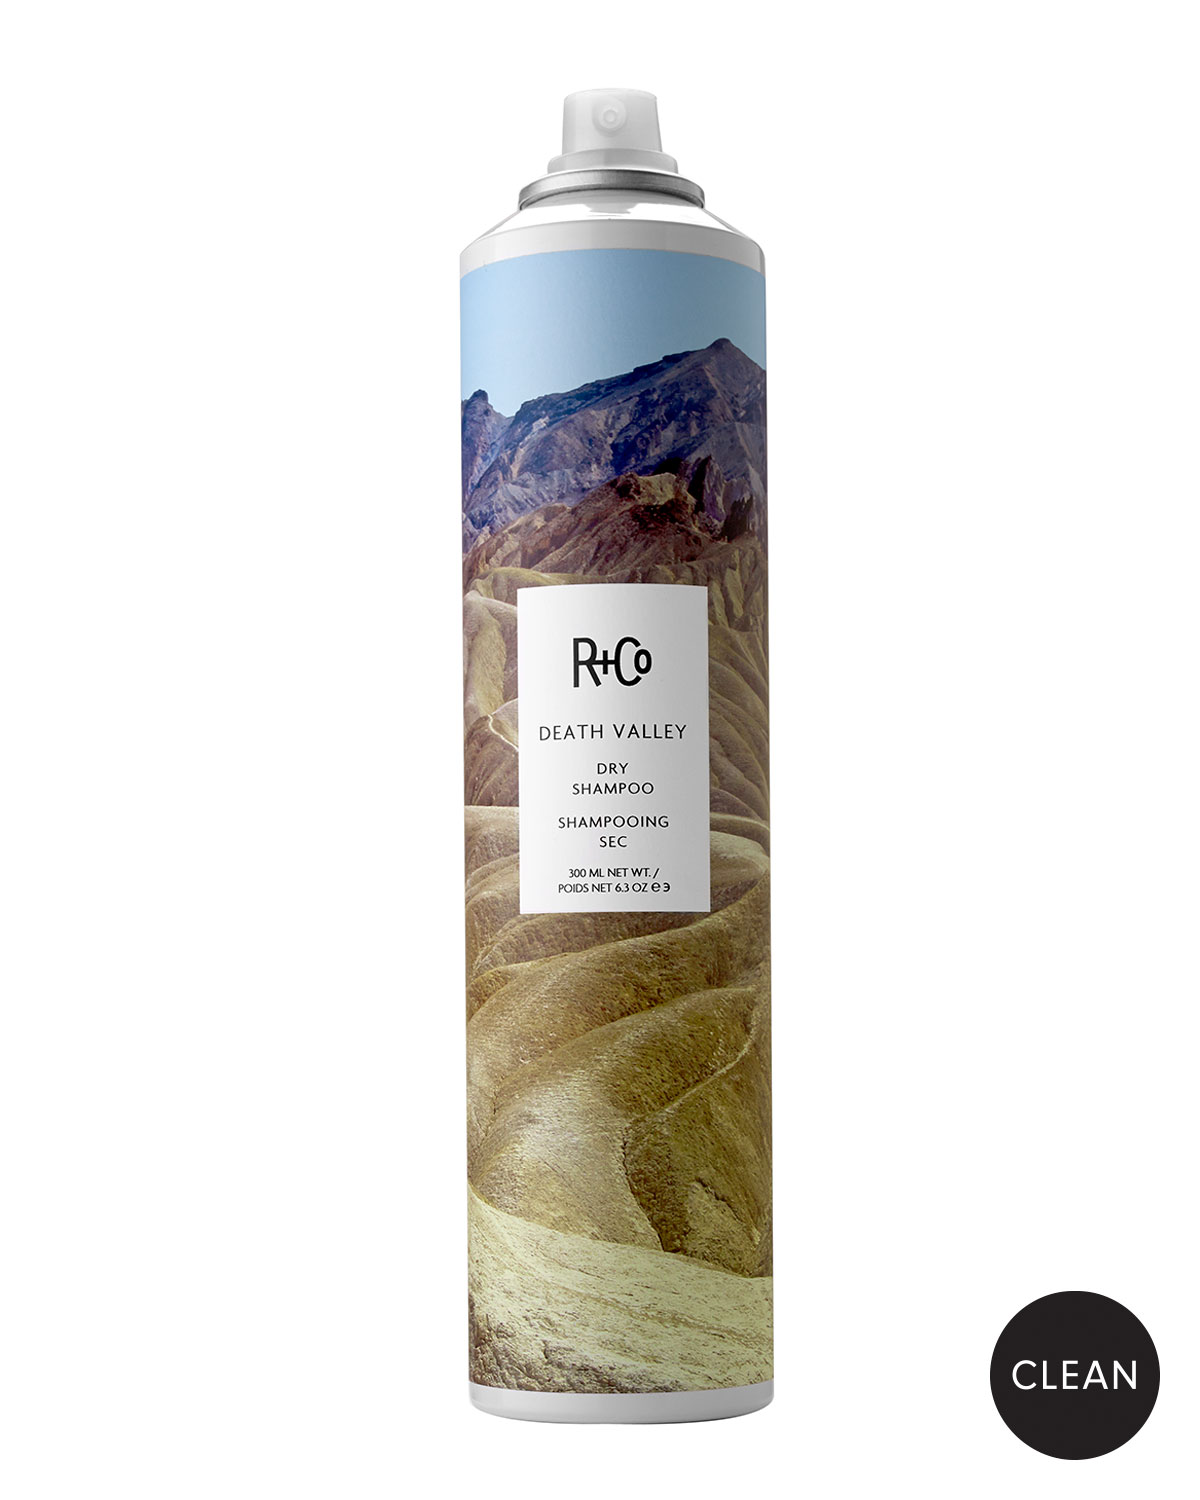 Death Valley Dry Shampoo, 6.3 oz. - R+Co